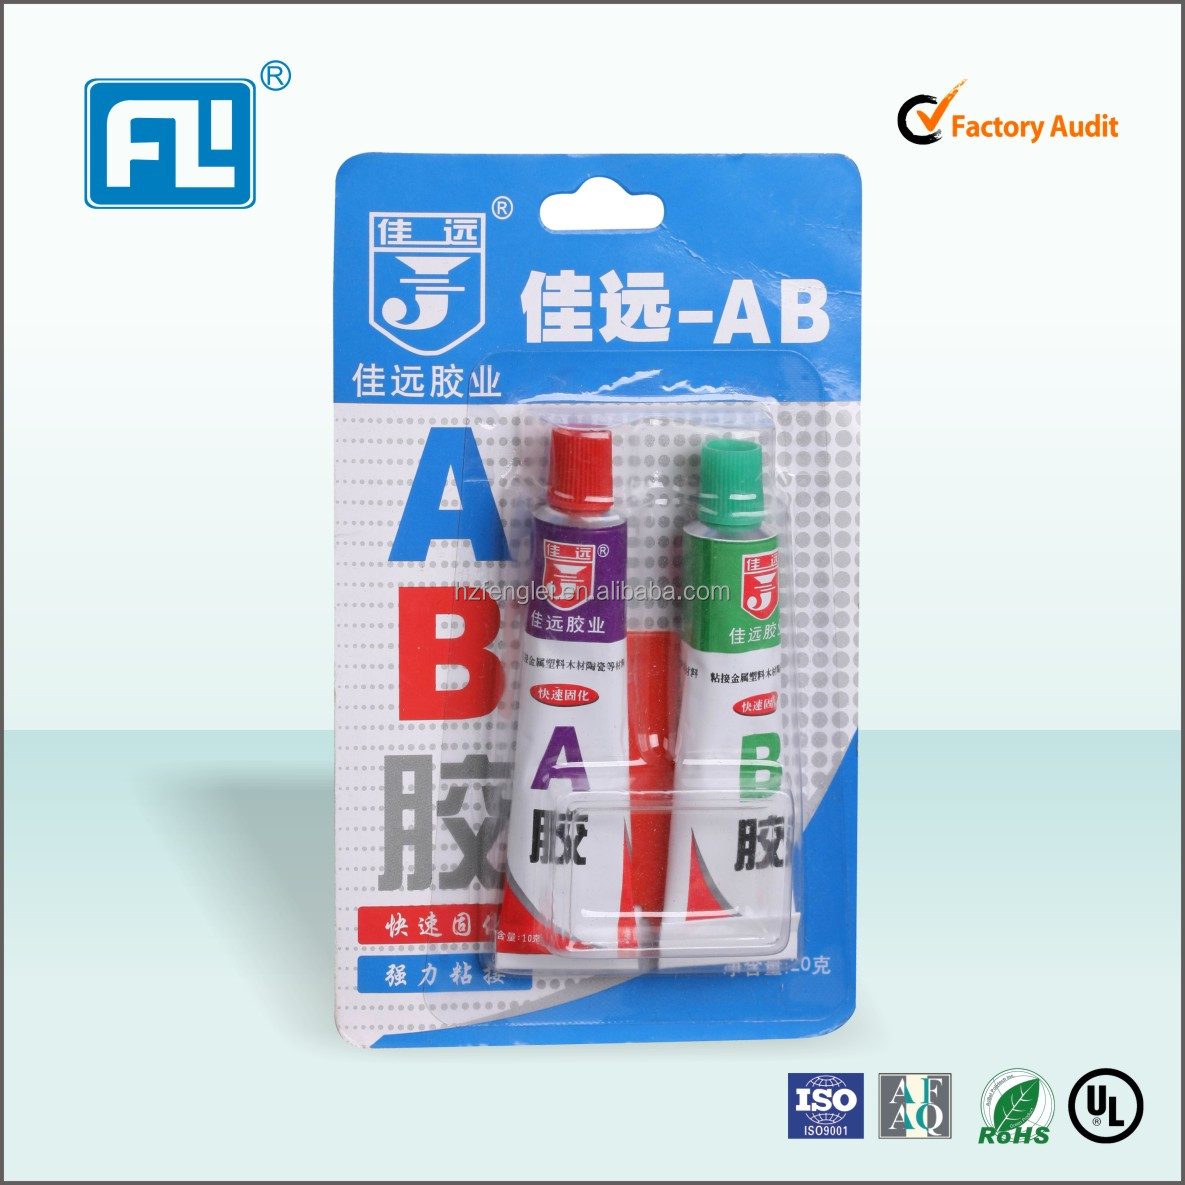 Acrylic Glue, Acrylic Glue Suppliers and Manufacturers at Alibaba.com